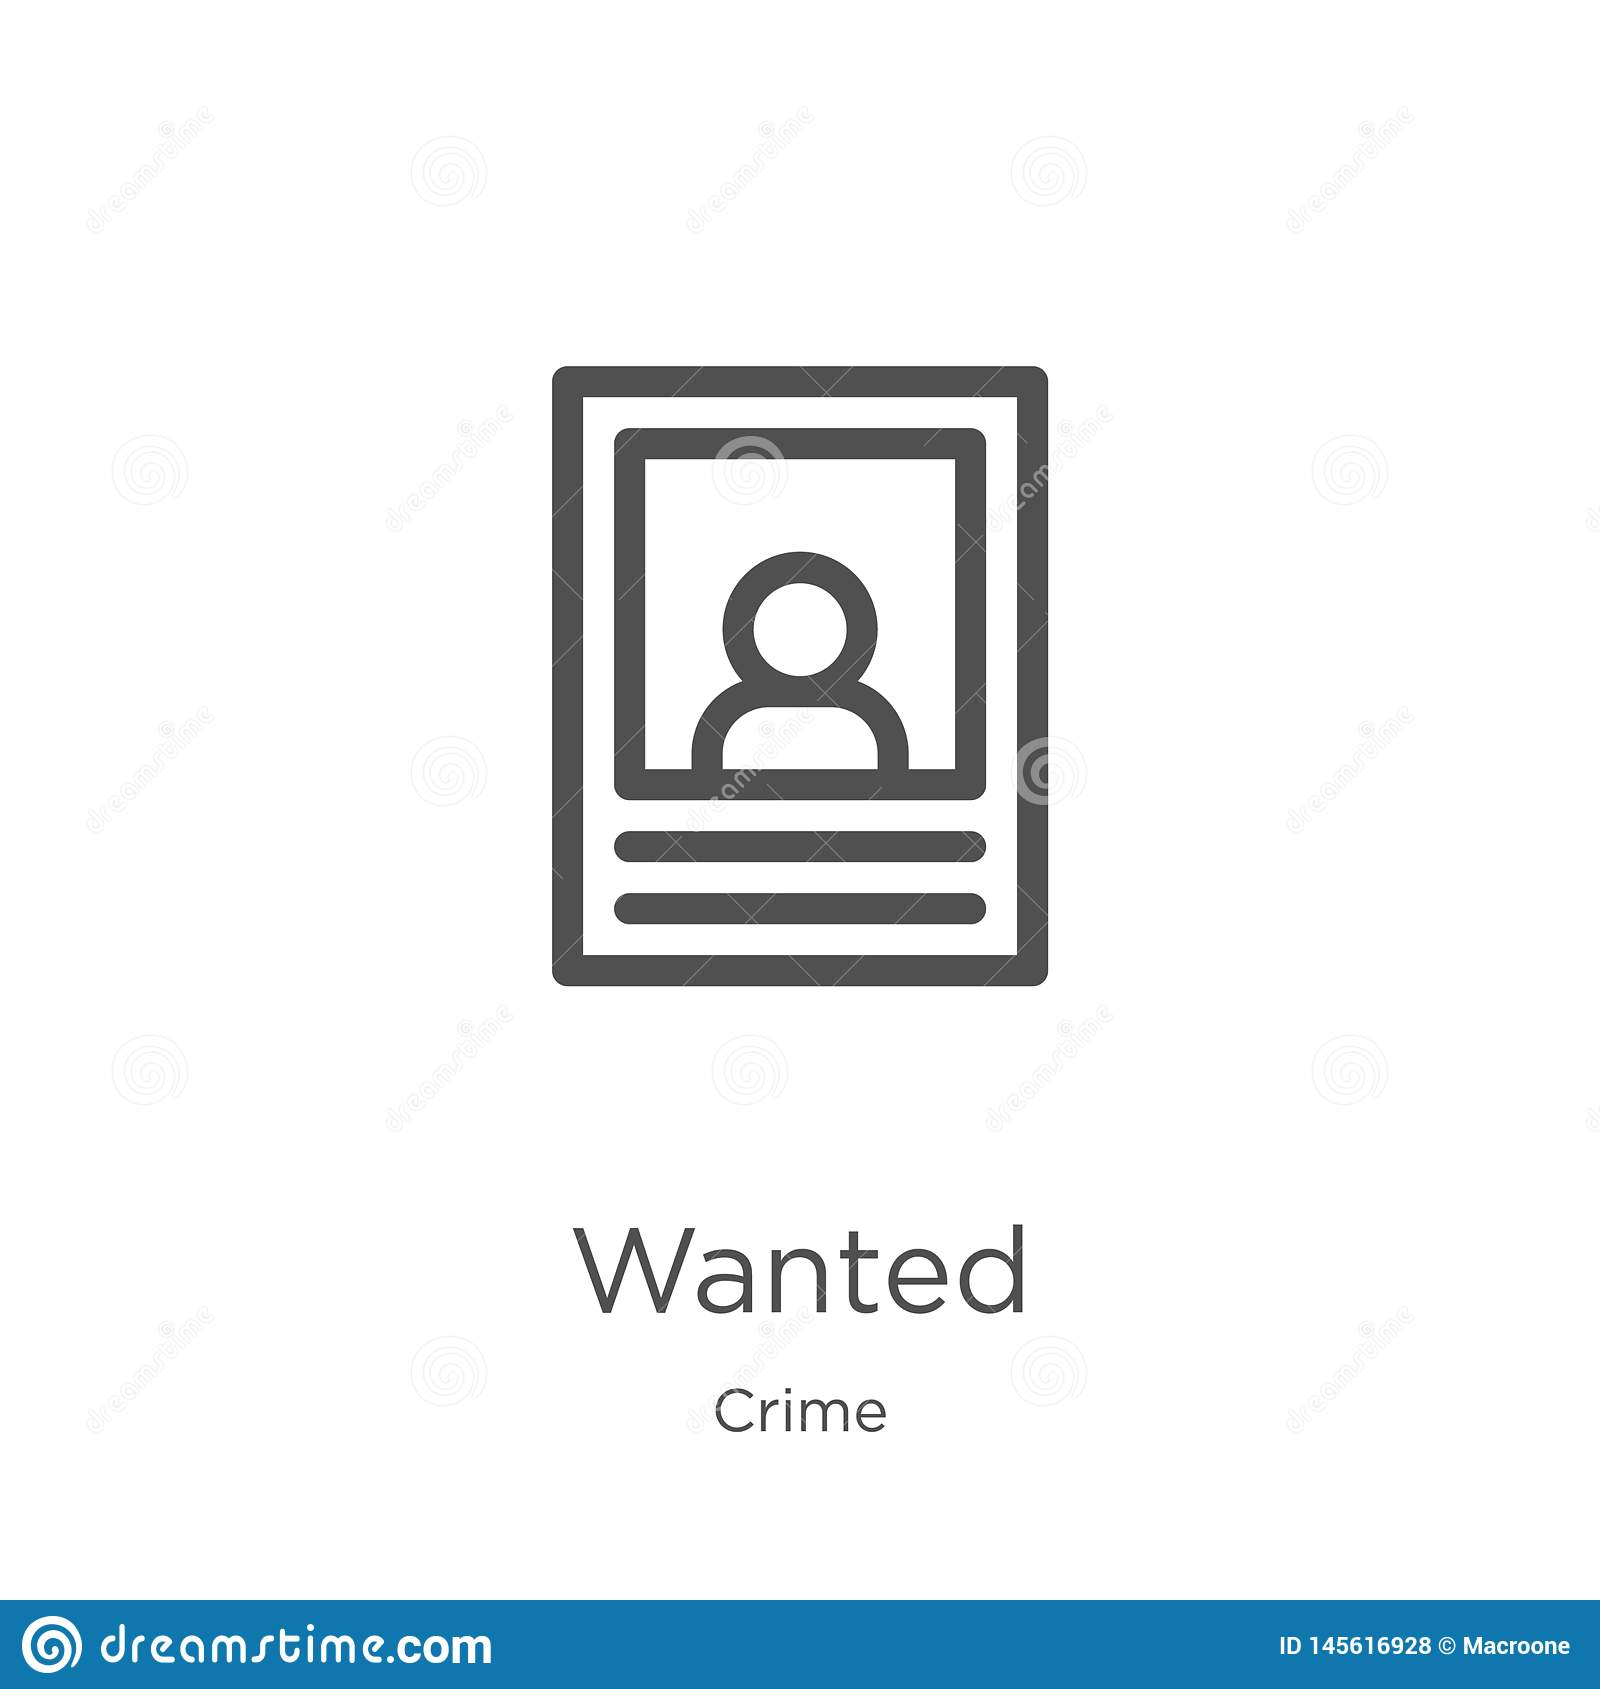 wanted icon vector from crime collection. Thin line wanted outline icon vector illustration. Outline, thin line wanted icon for